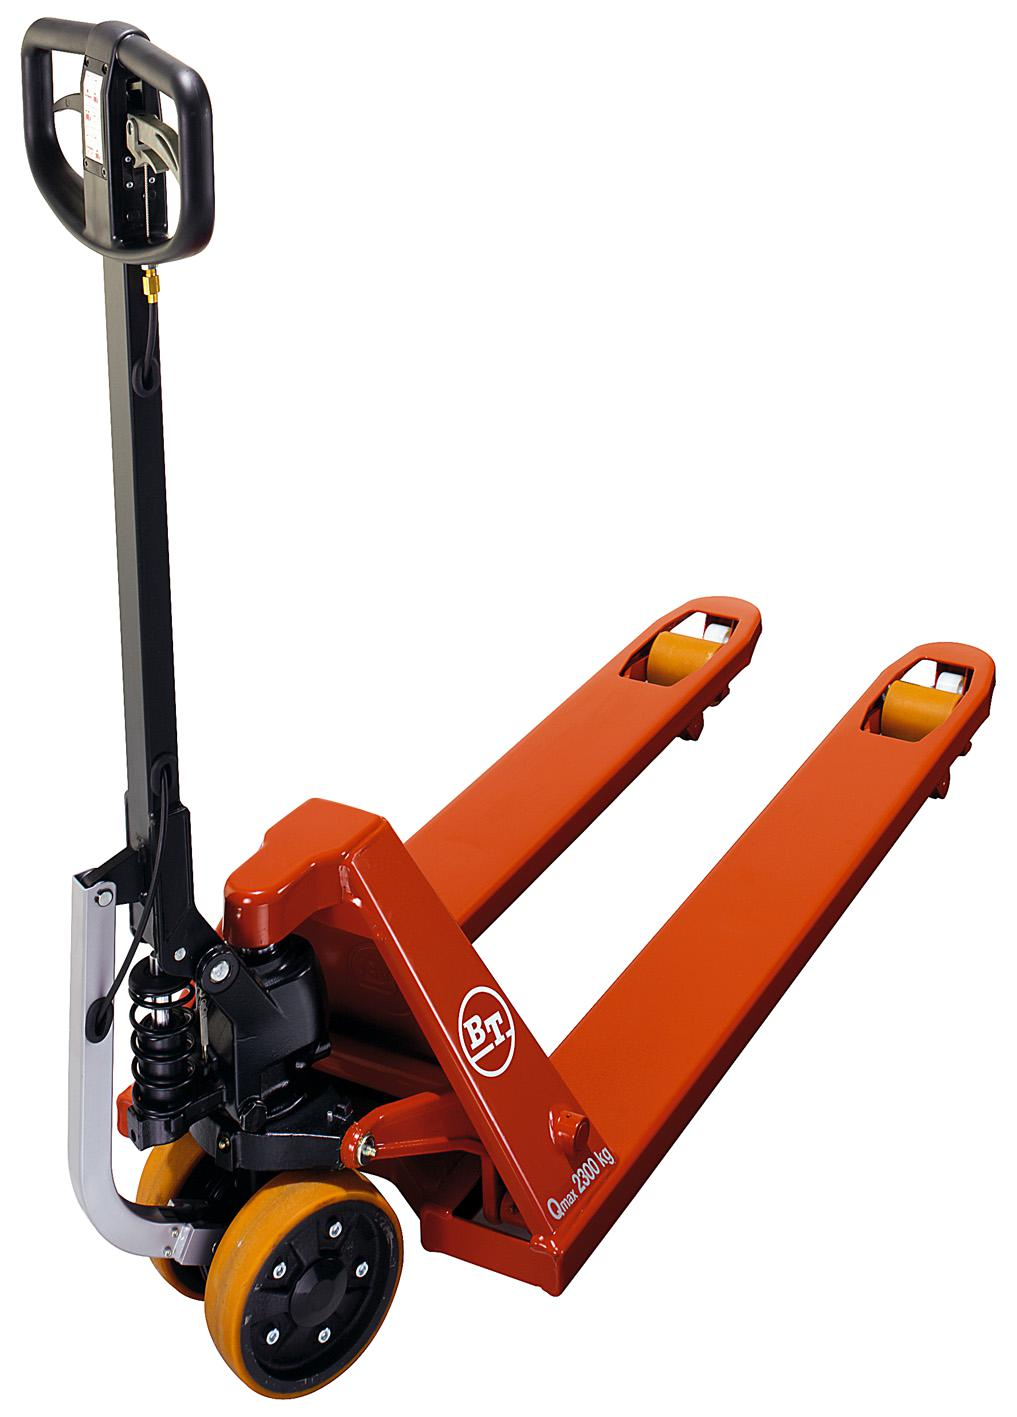 Image of   Gaffelvagn pro lifter, lhm230p